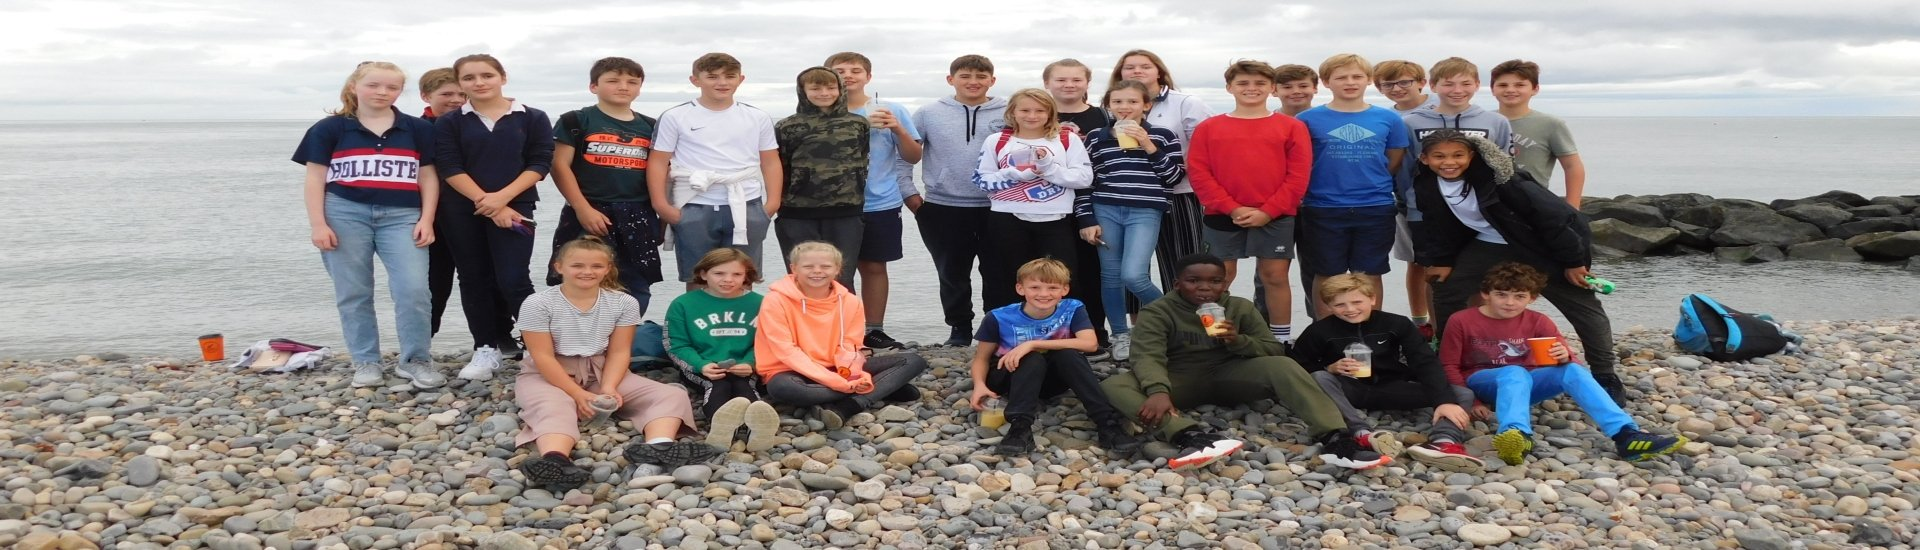 Langley Prep - Rugby & Hockey Tour To Ireland 2018, Irish Rugby Tours